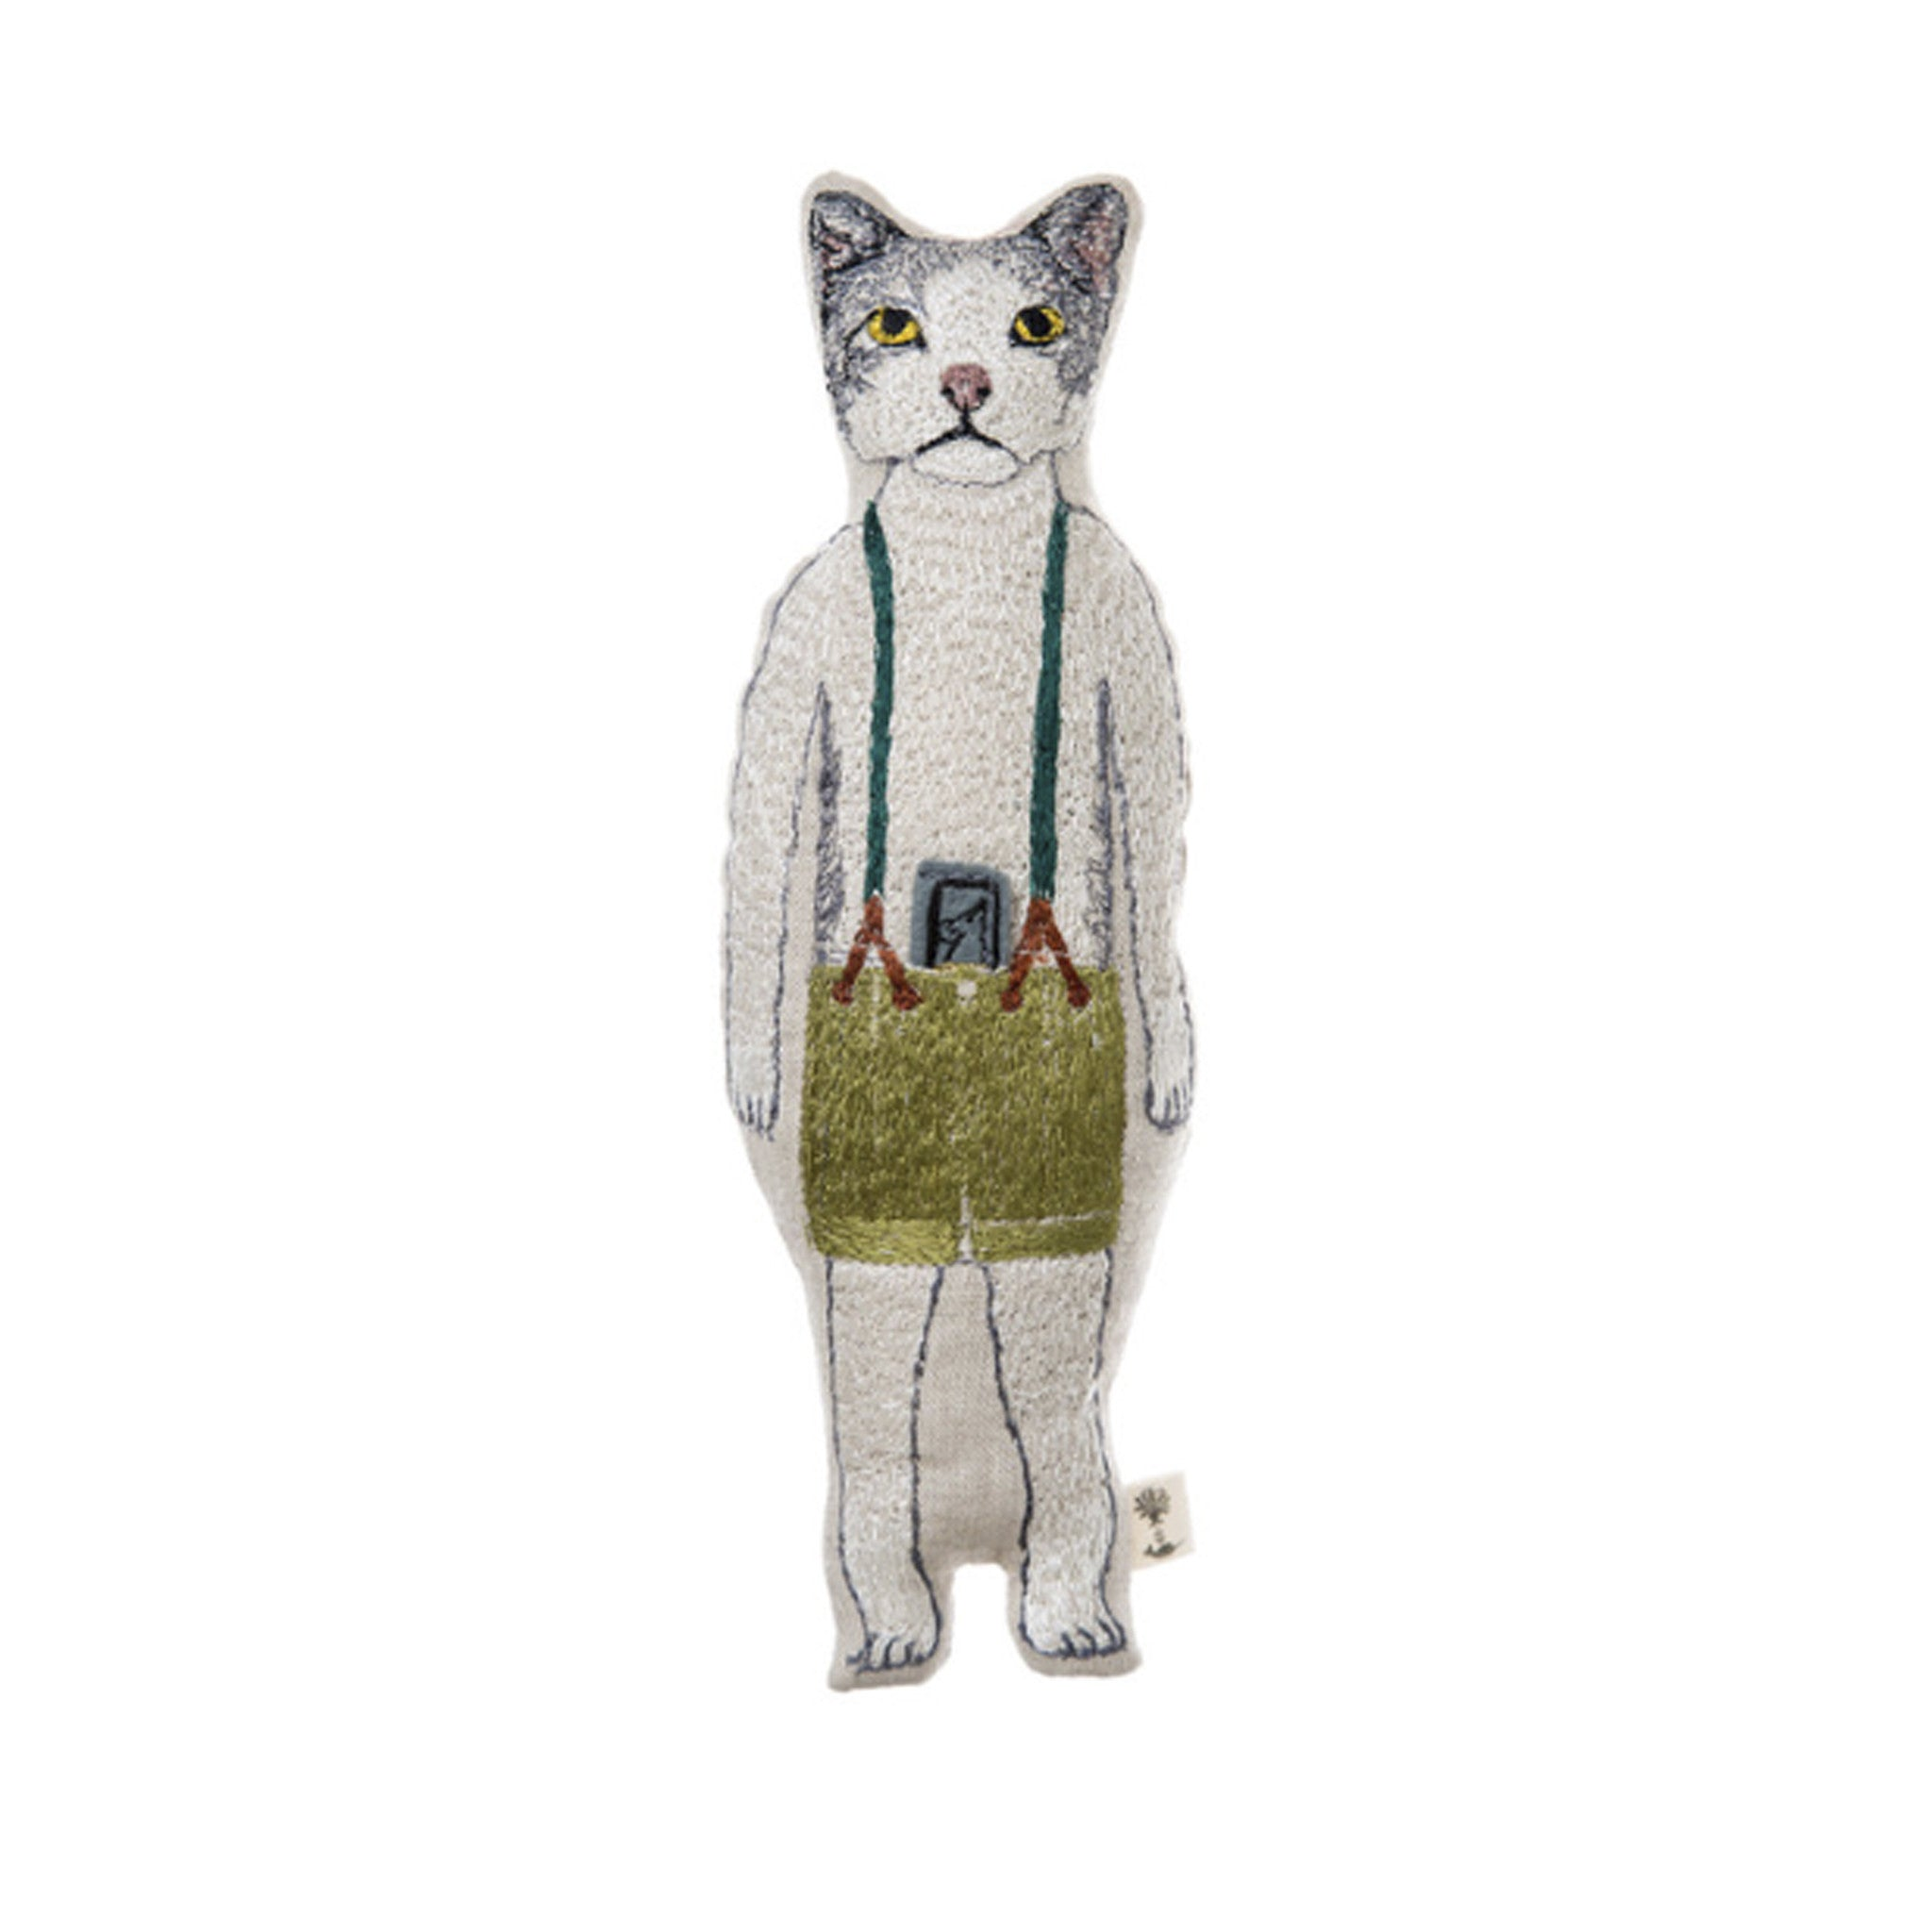 Coral and Tusk : Kitty Doll